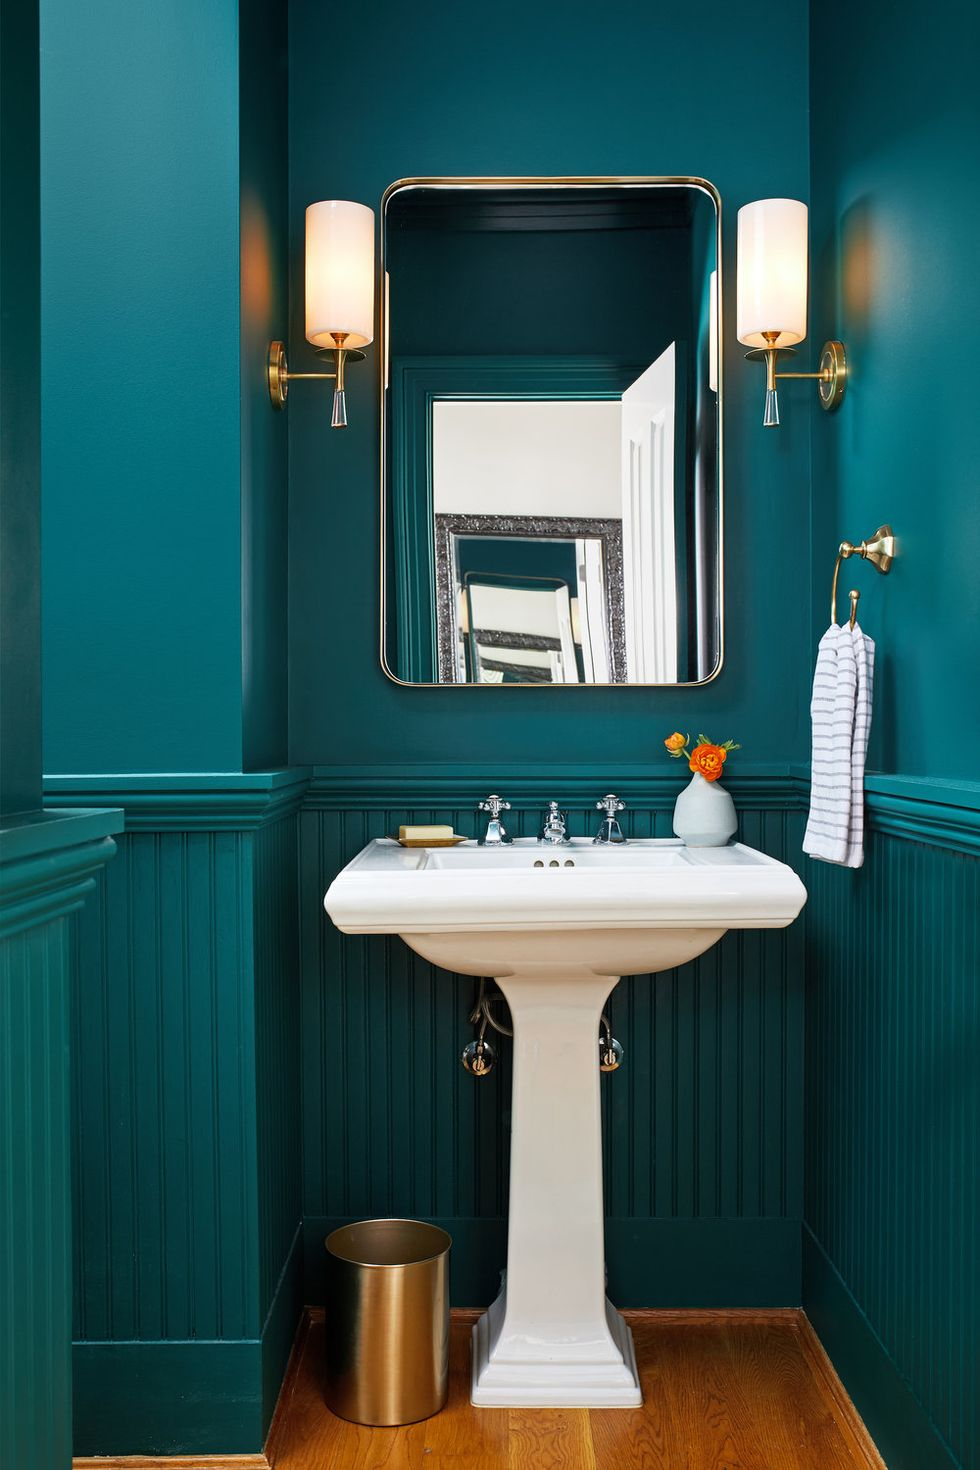 10 Rooms That Made Great Use Of Teal Paint In 2020 Teal Bathroom Teal Bathroom Decor Beadboard Bathroom